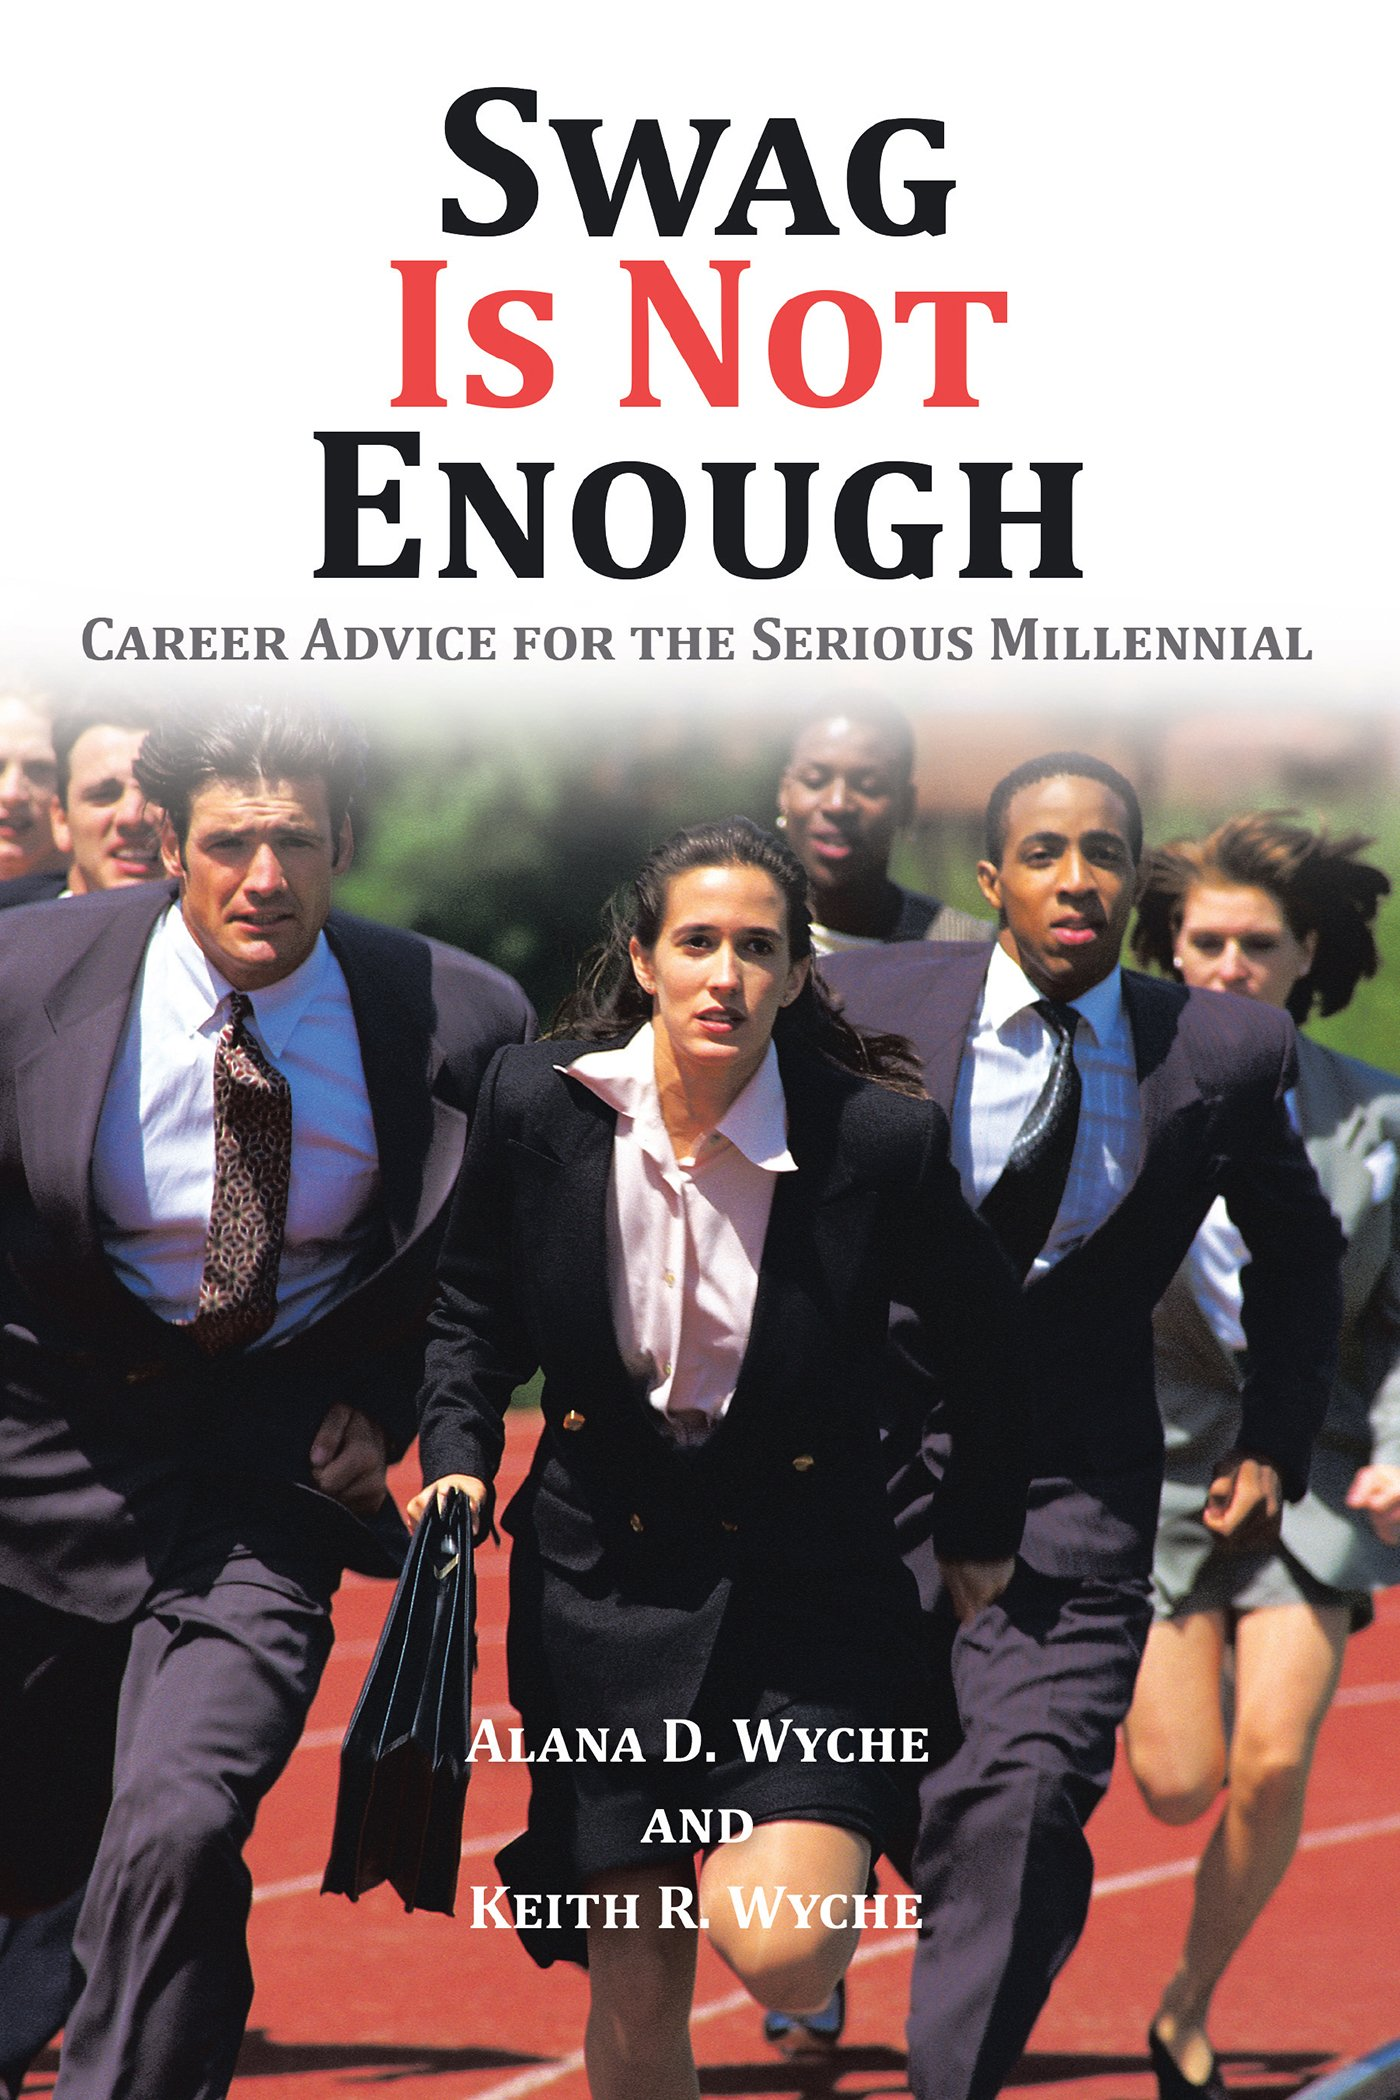 Swag Is Not Enough: Career Advice for the Serious Millennial